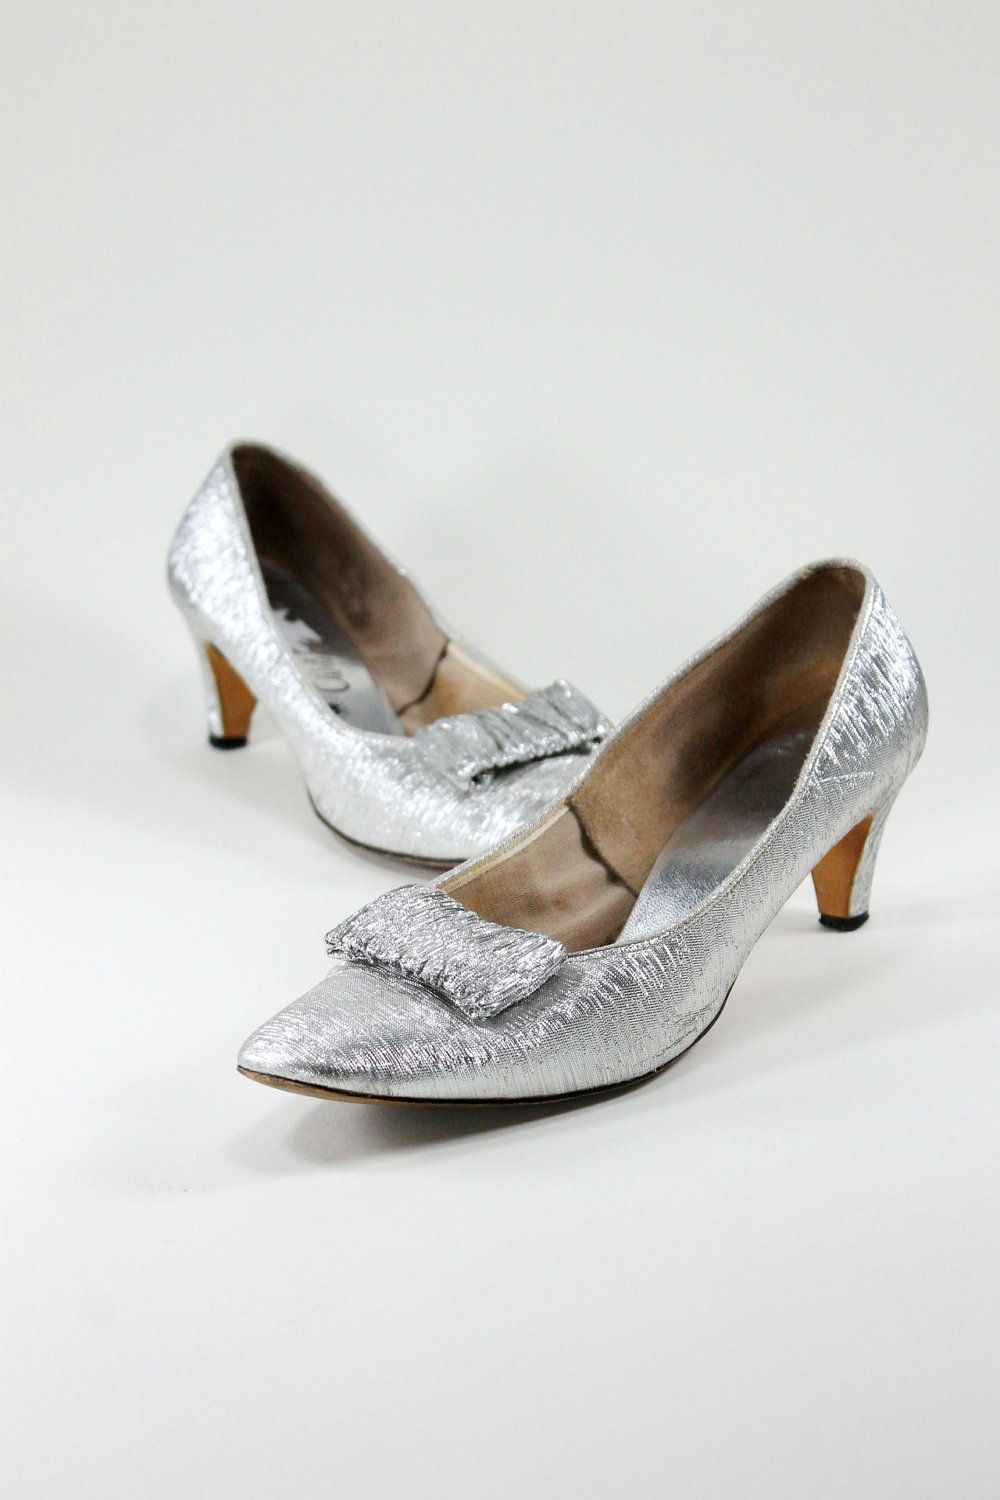 08c5e37ebe7 Holiday Sale - 1960s Silver Metallic Kitten Heels Pumps. Mad Men Fashion.  Holiday Party. New Years Eve. US Size 9